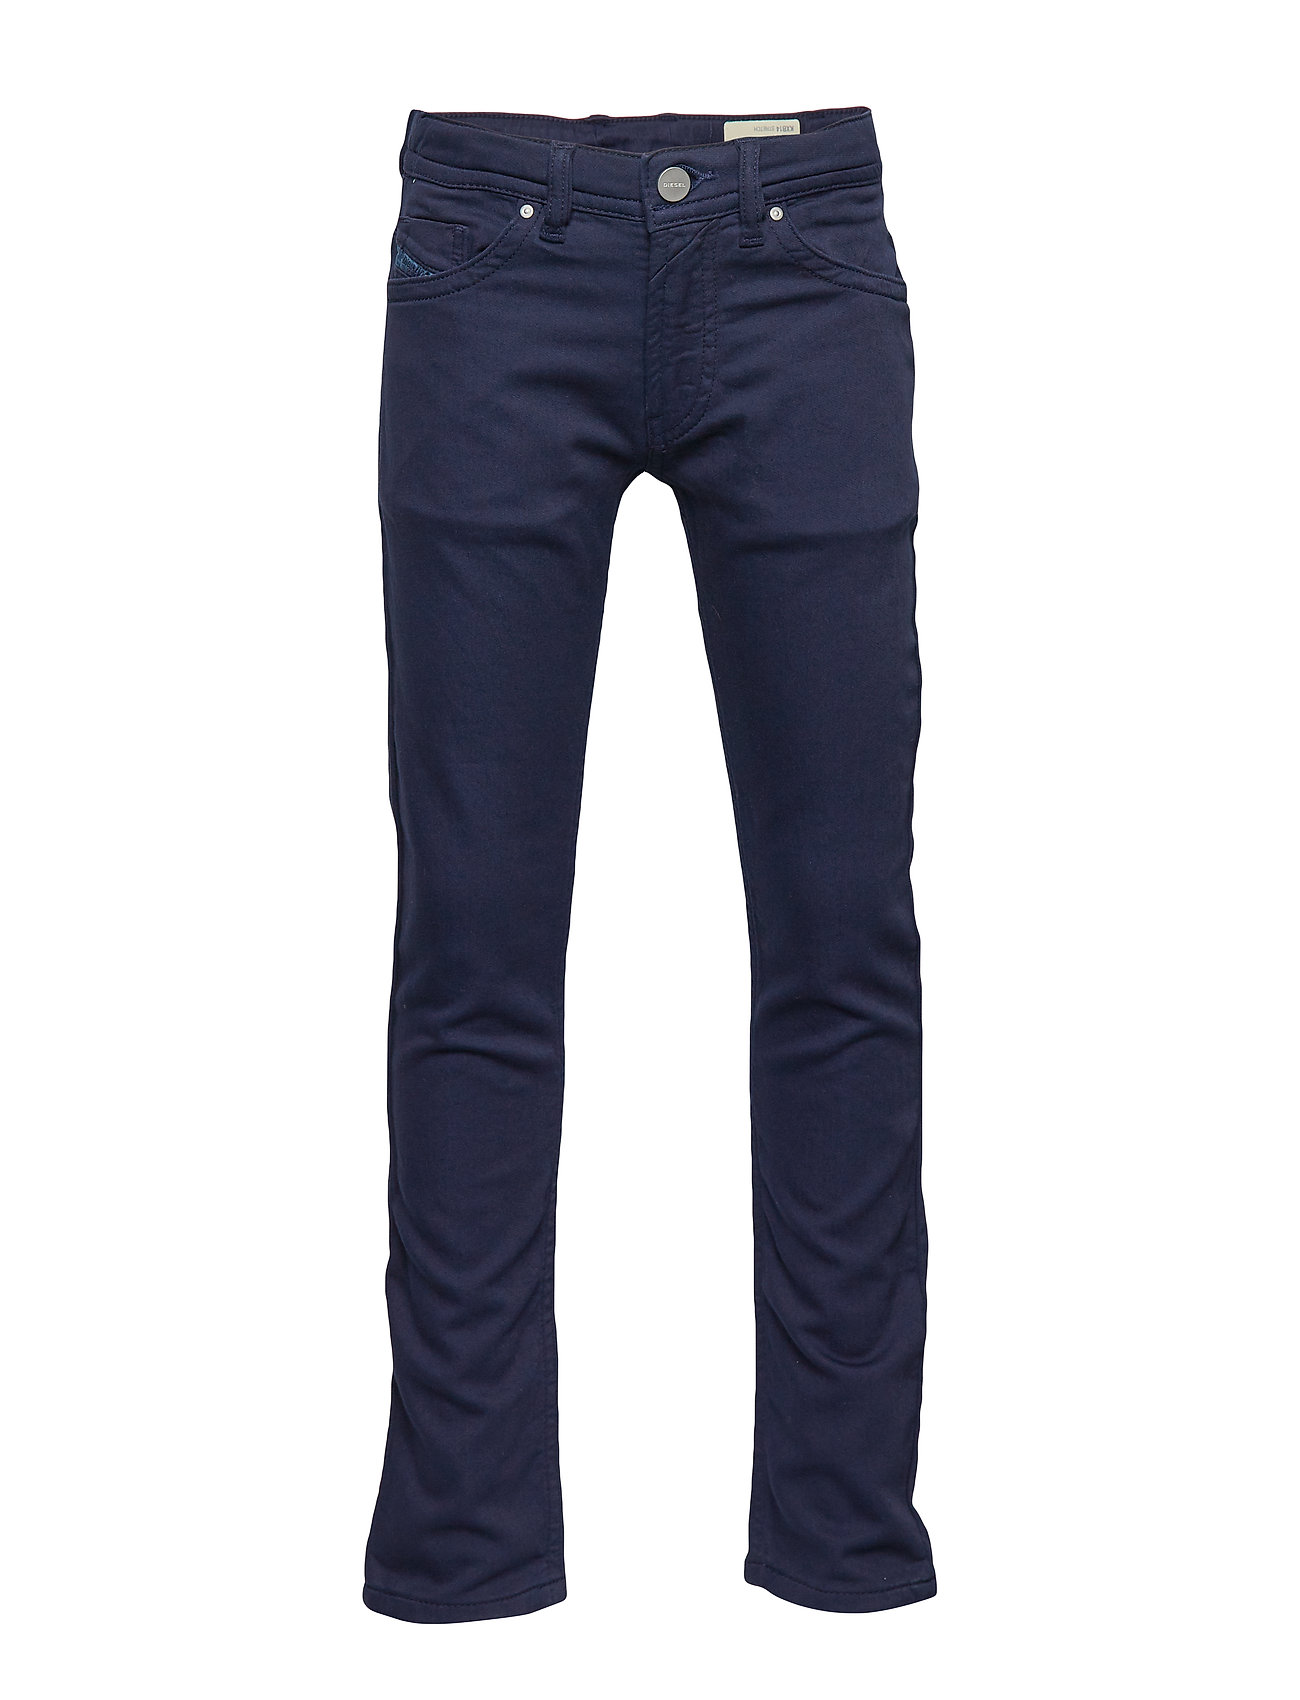 Diesel THOMMER-J JJJ TROUSERS - DARK BLUE